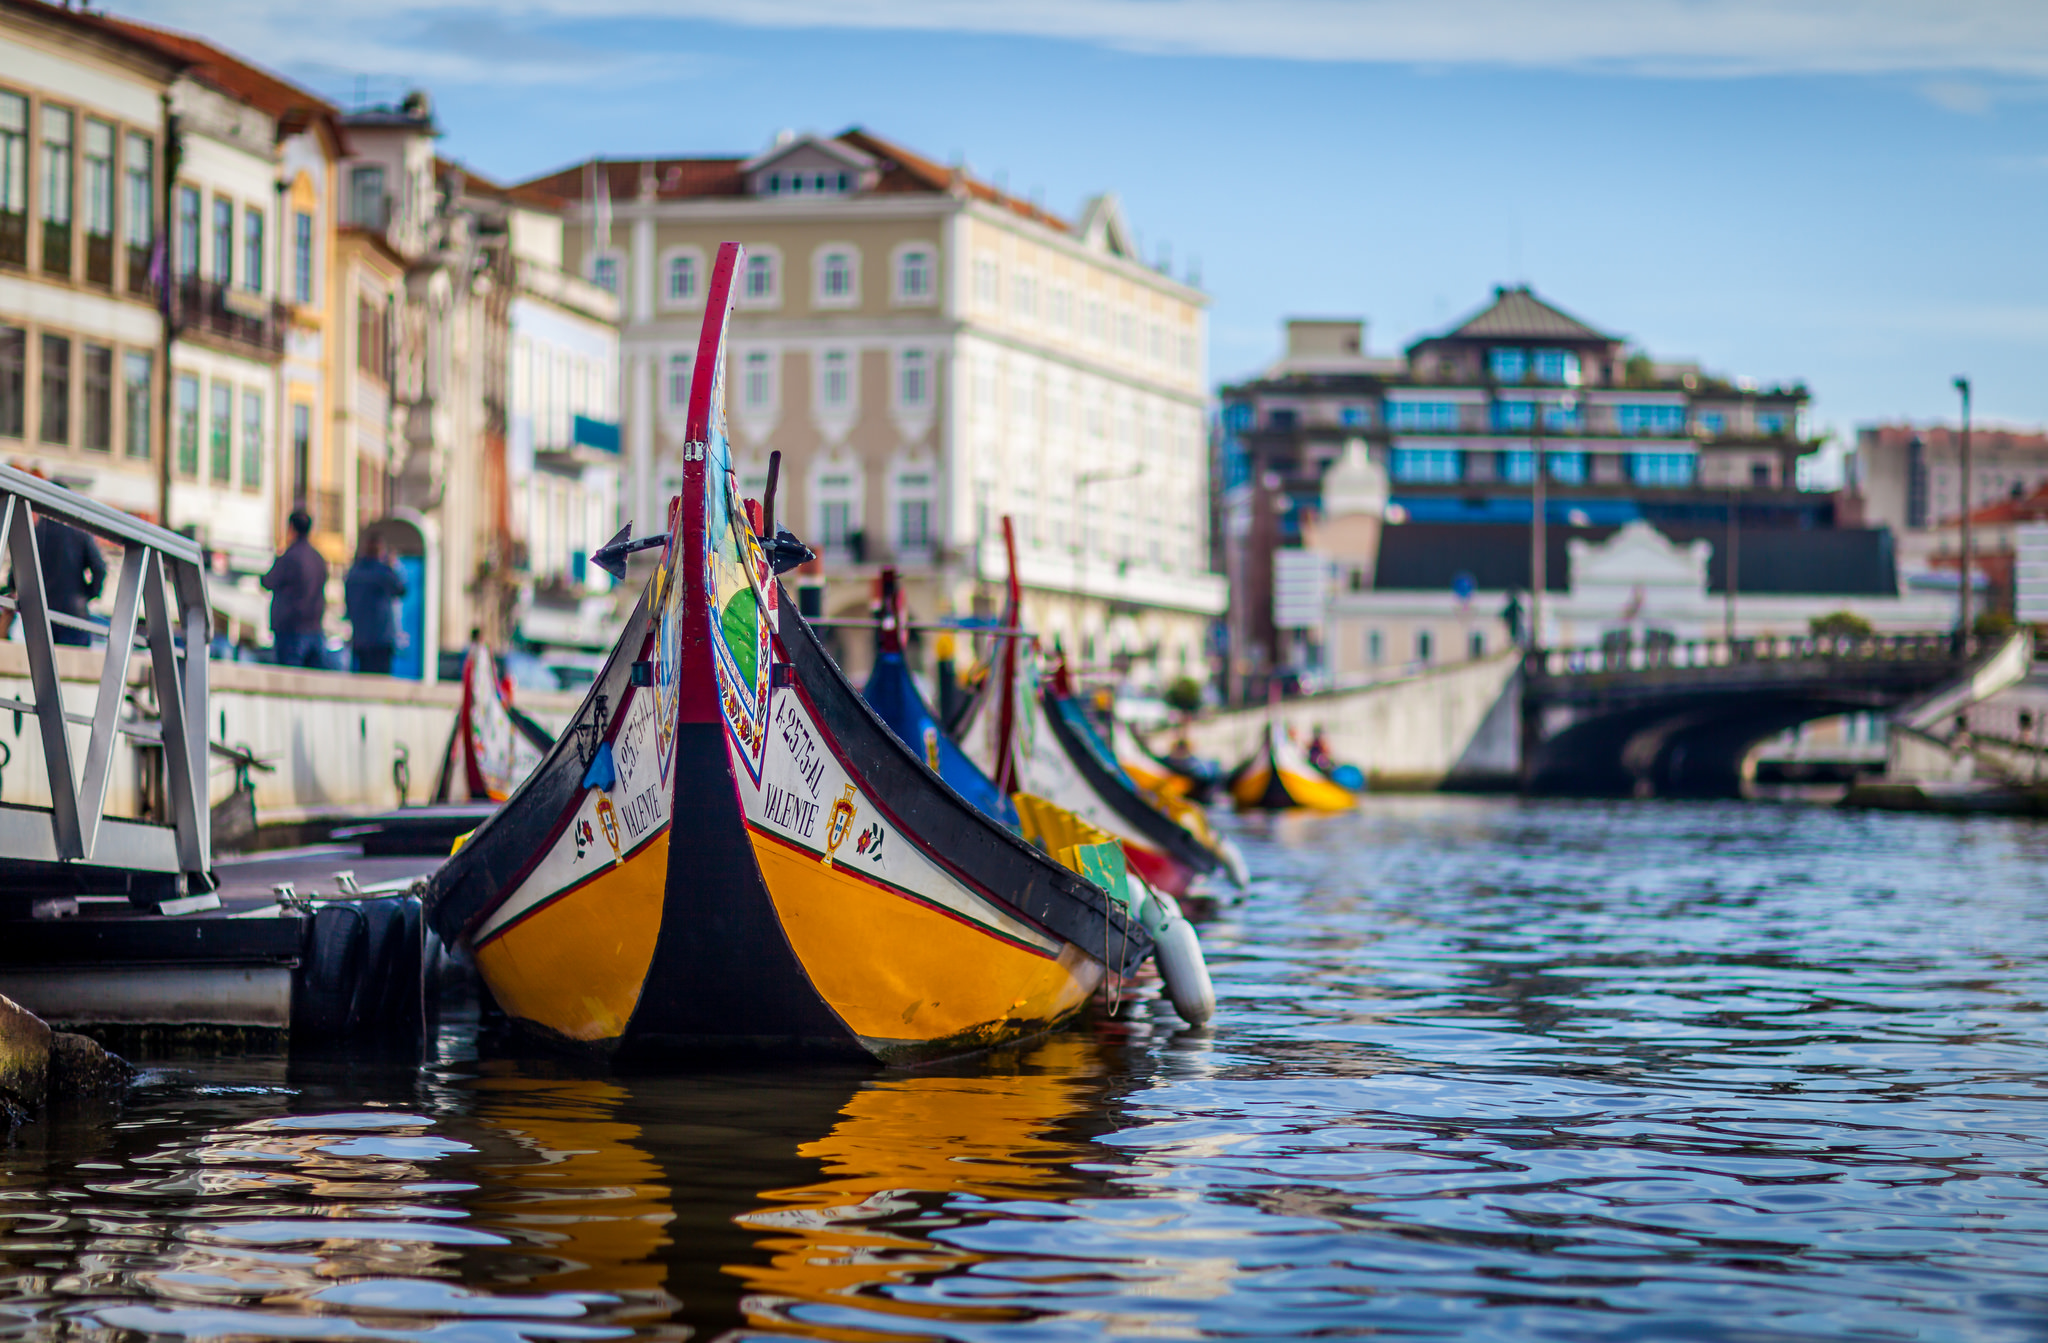 Aveiro and its traditional Moliceiro boat, Portugal. Photo by Tiago Ferreira.